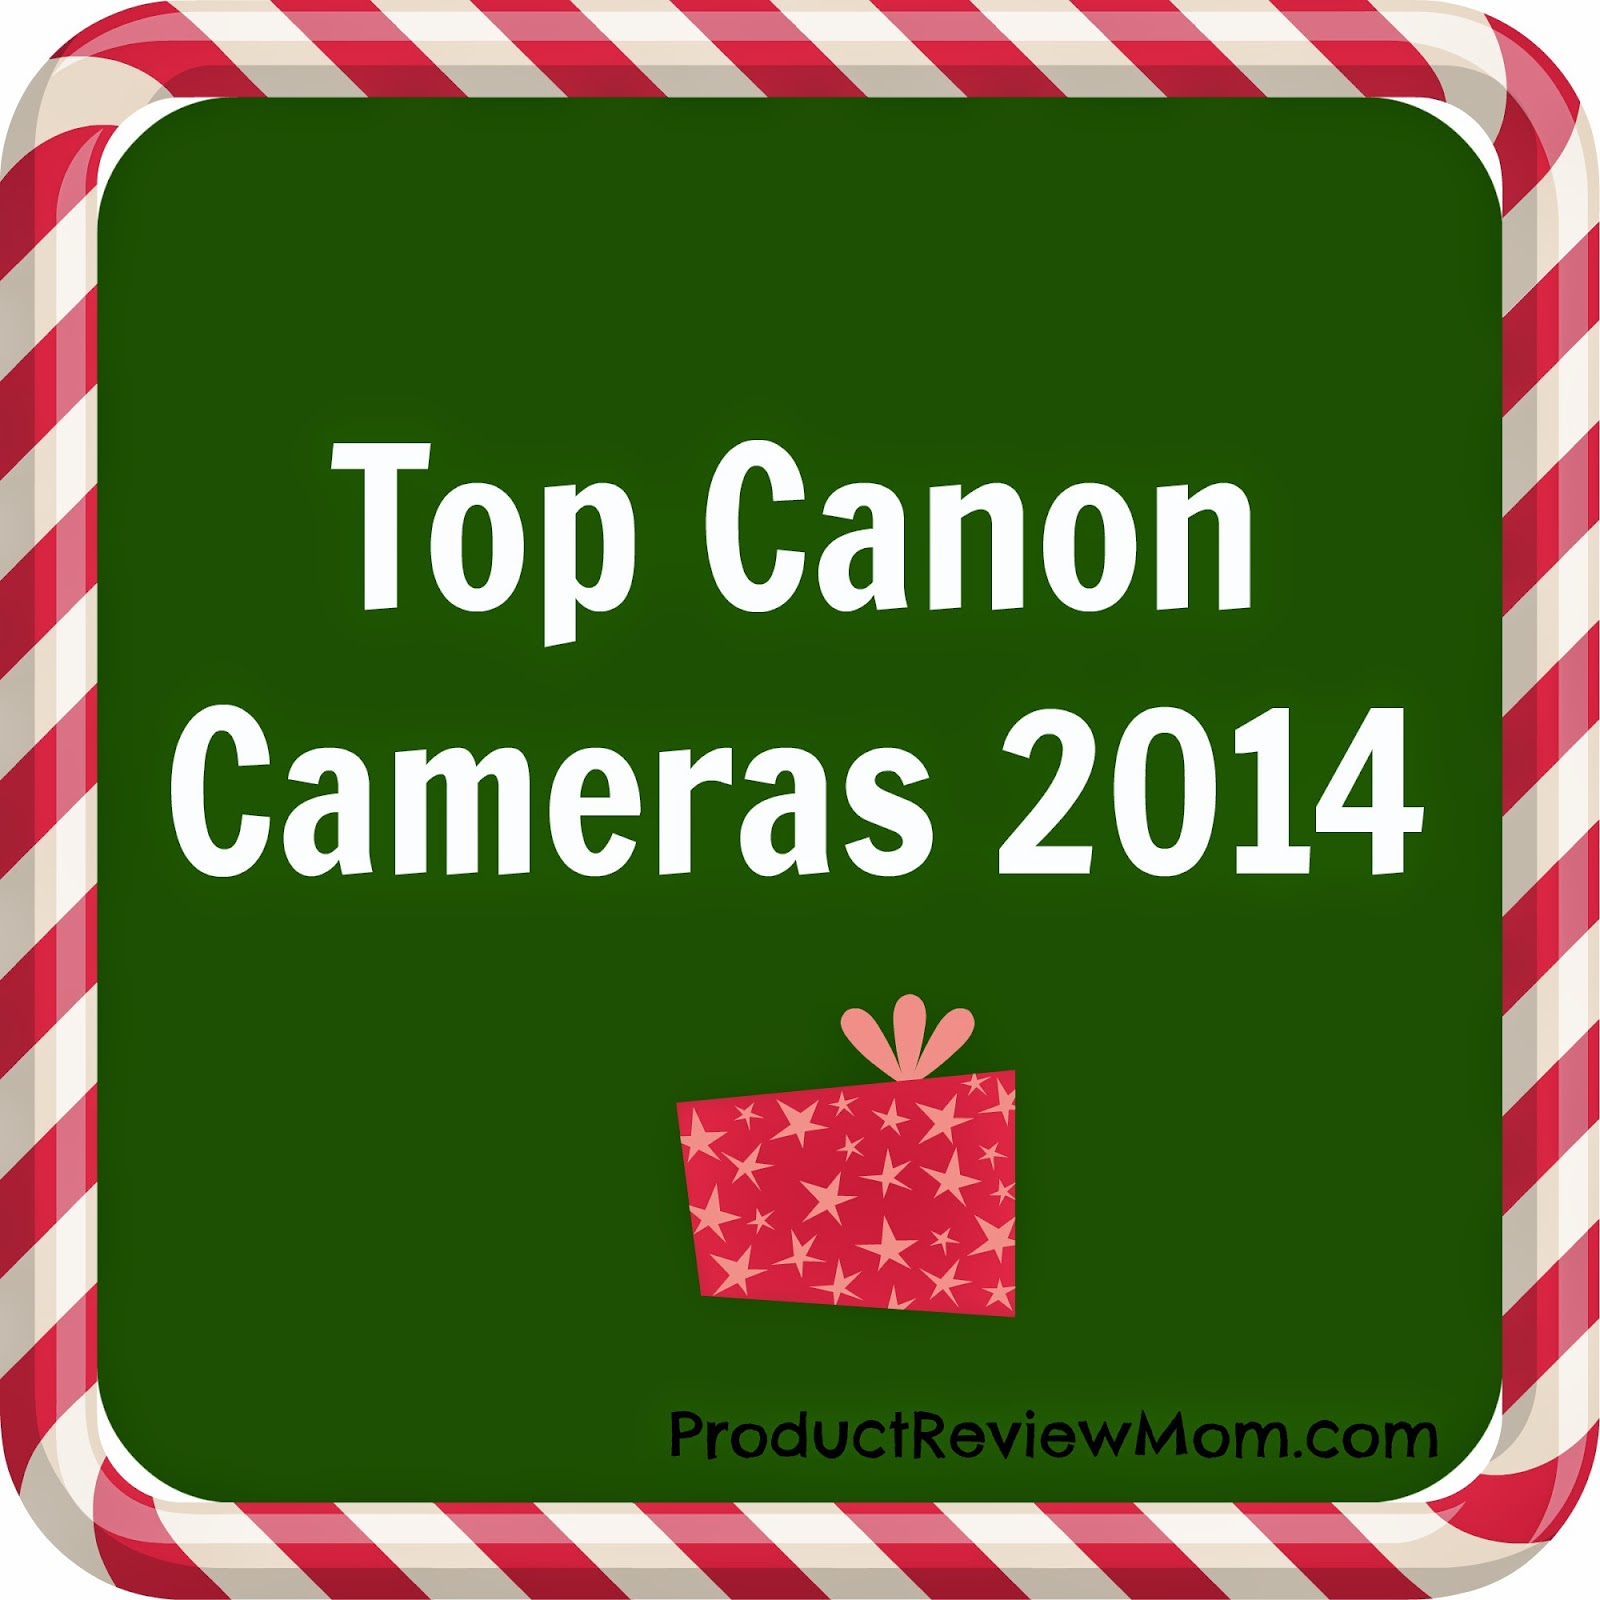 Top Canon Cameras 2014 #HolidayGiftGuide via www.productreviewmom.com